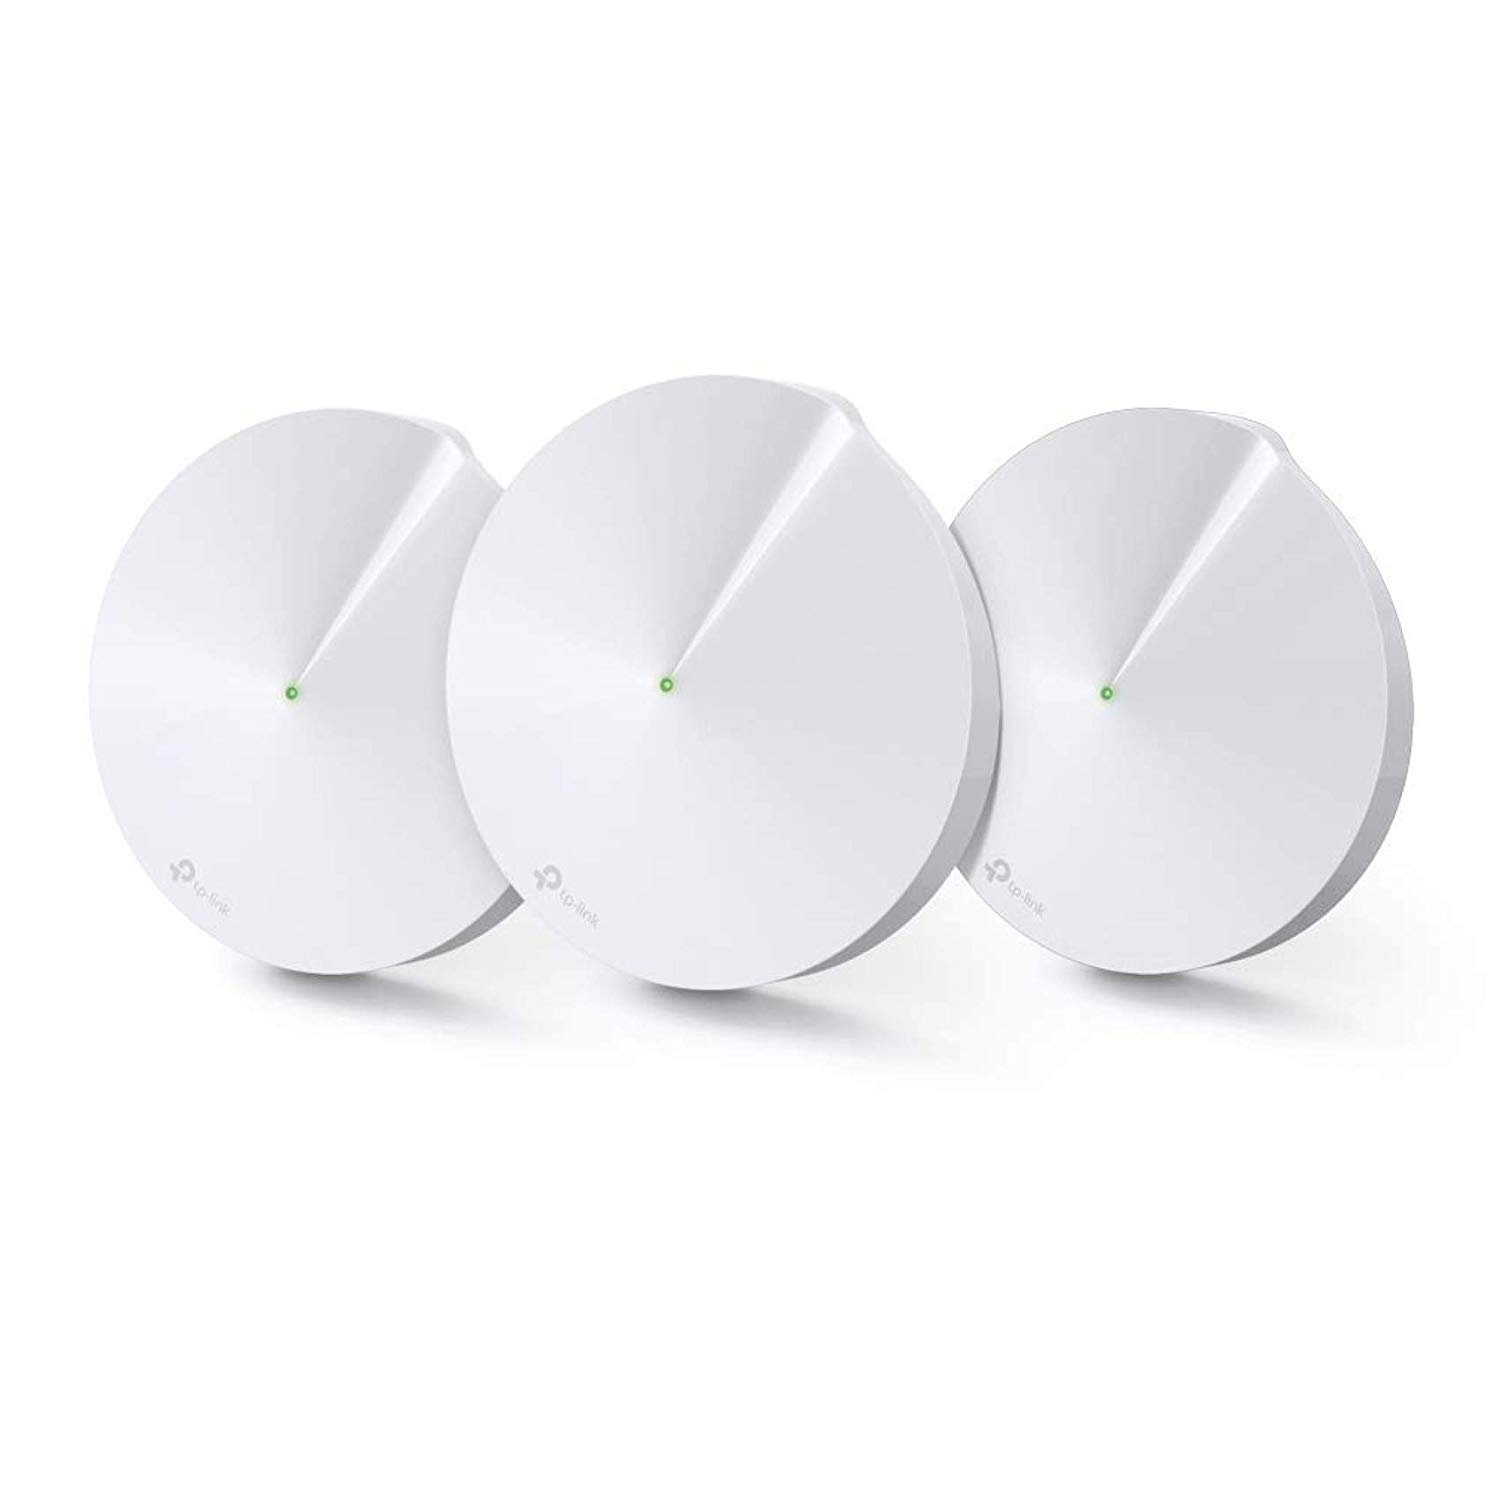 TP-Link WLAN Mesh Set amazon